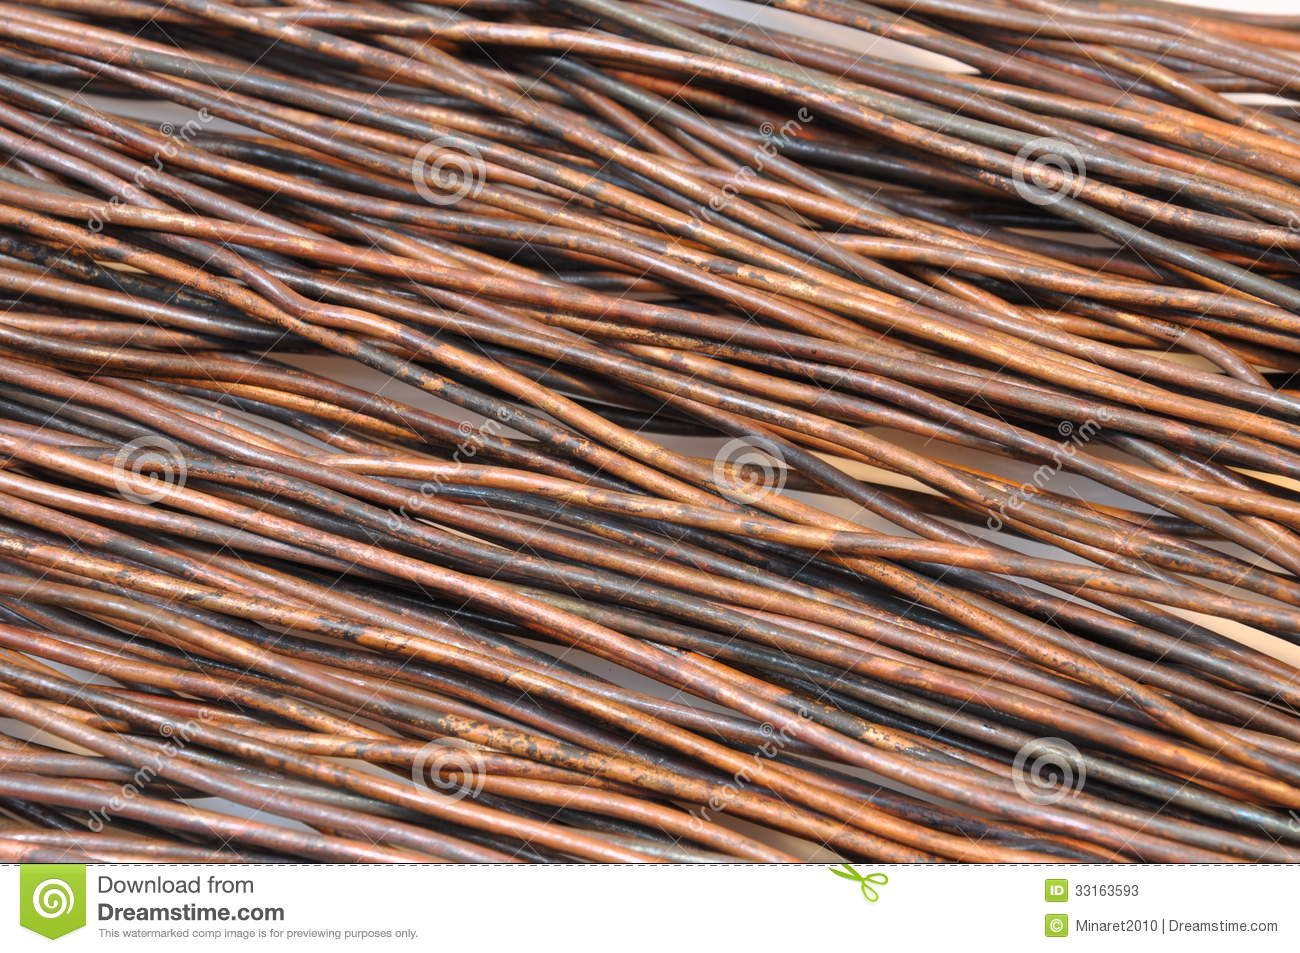 copper wires stock photos - photo #9